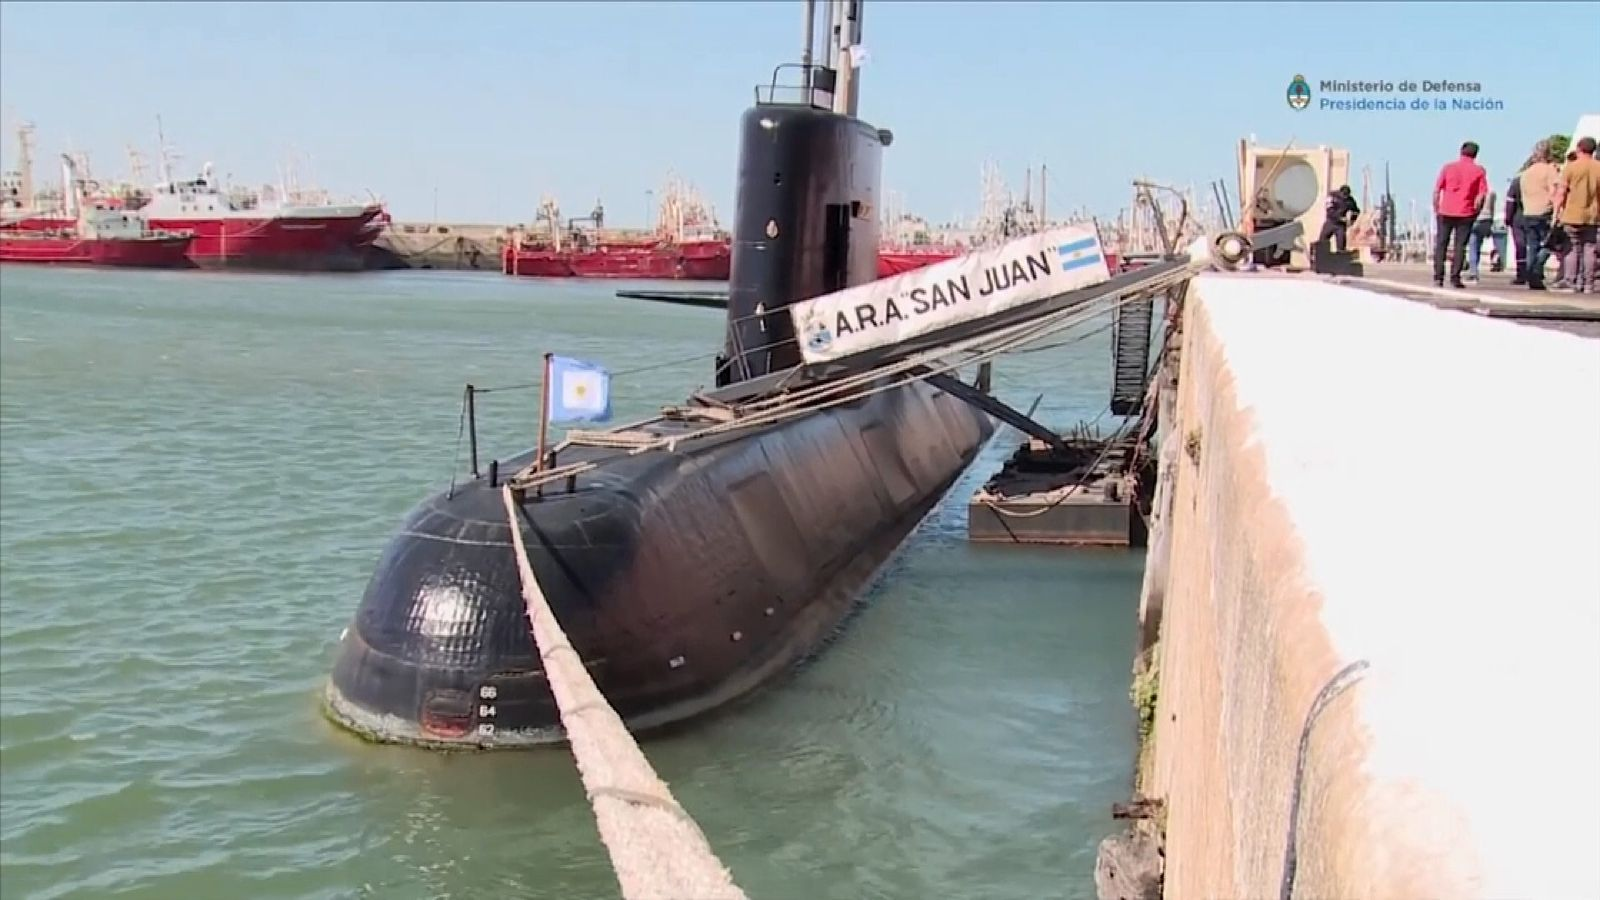 UK offers help as Argentinian military submarine ARA San Juan goes missing at sea